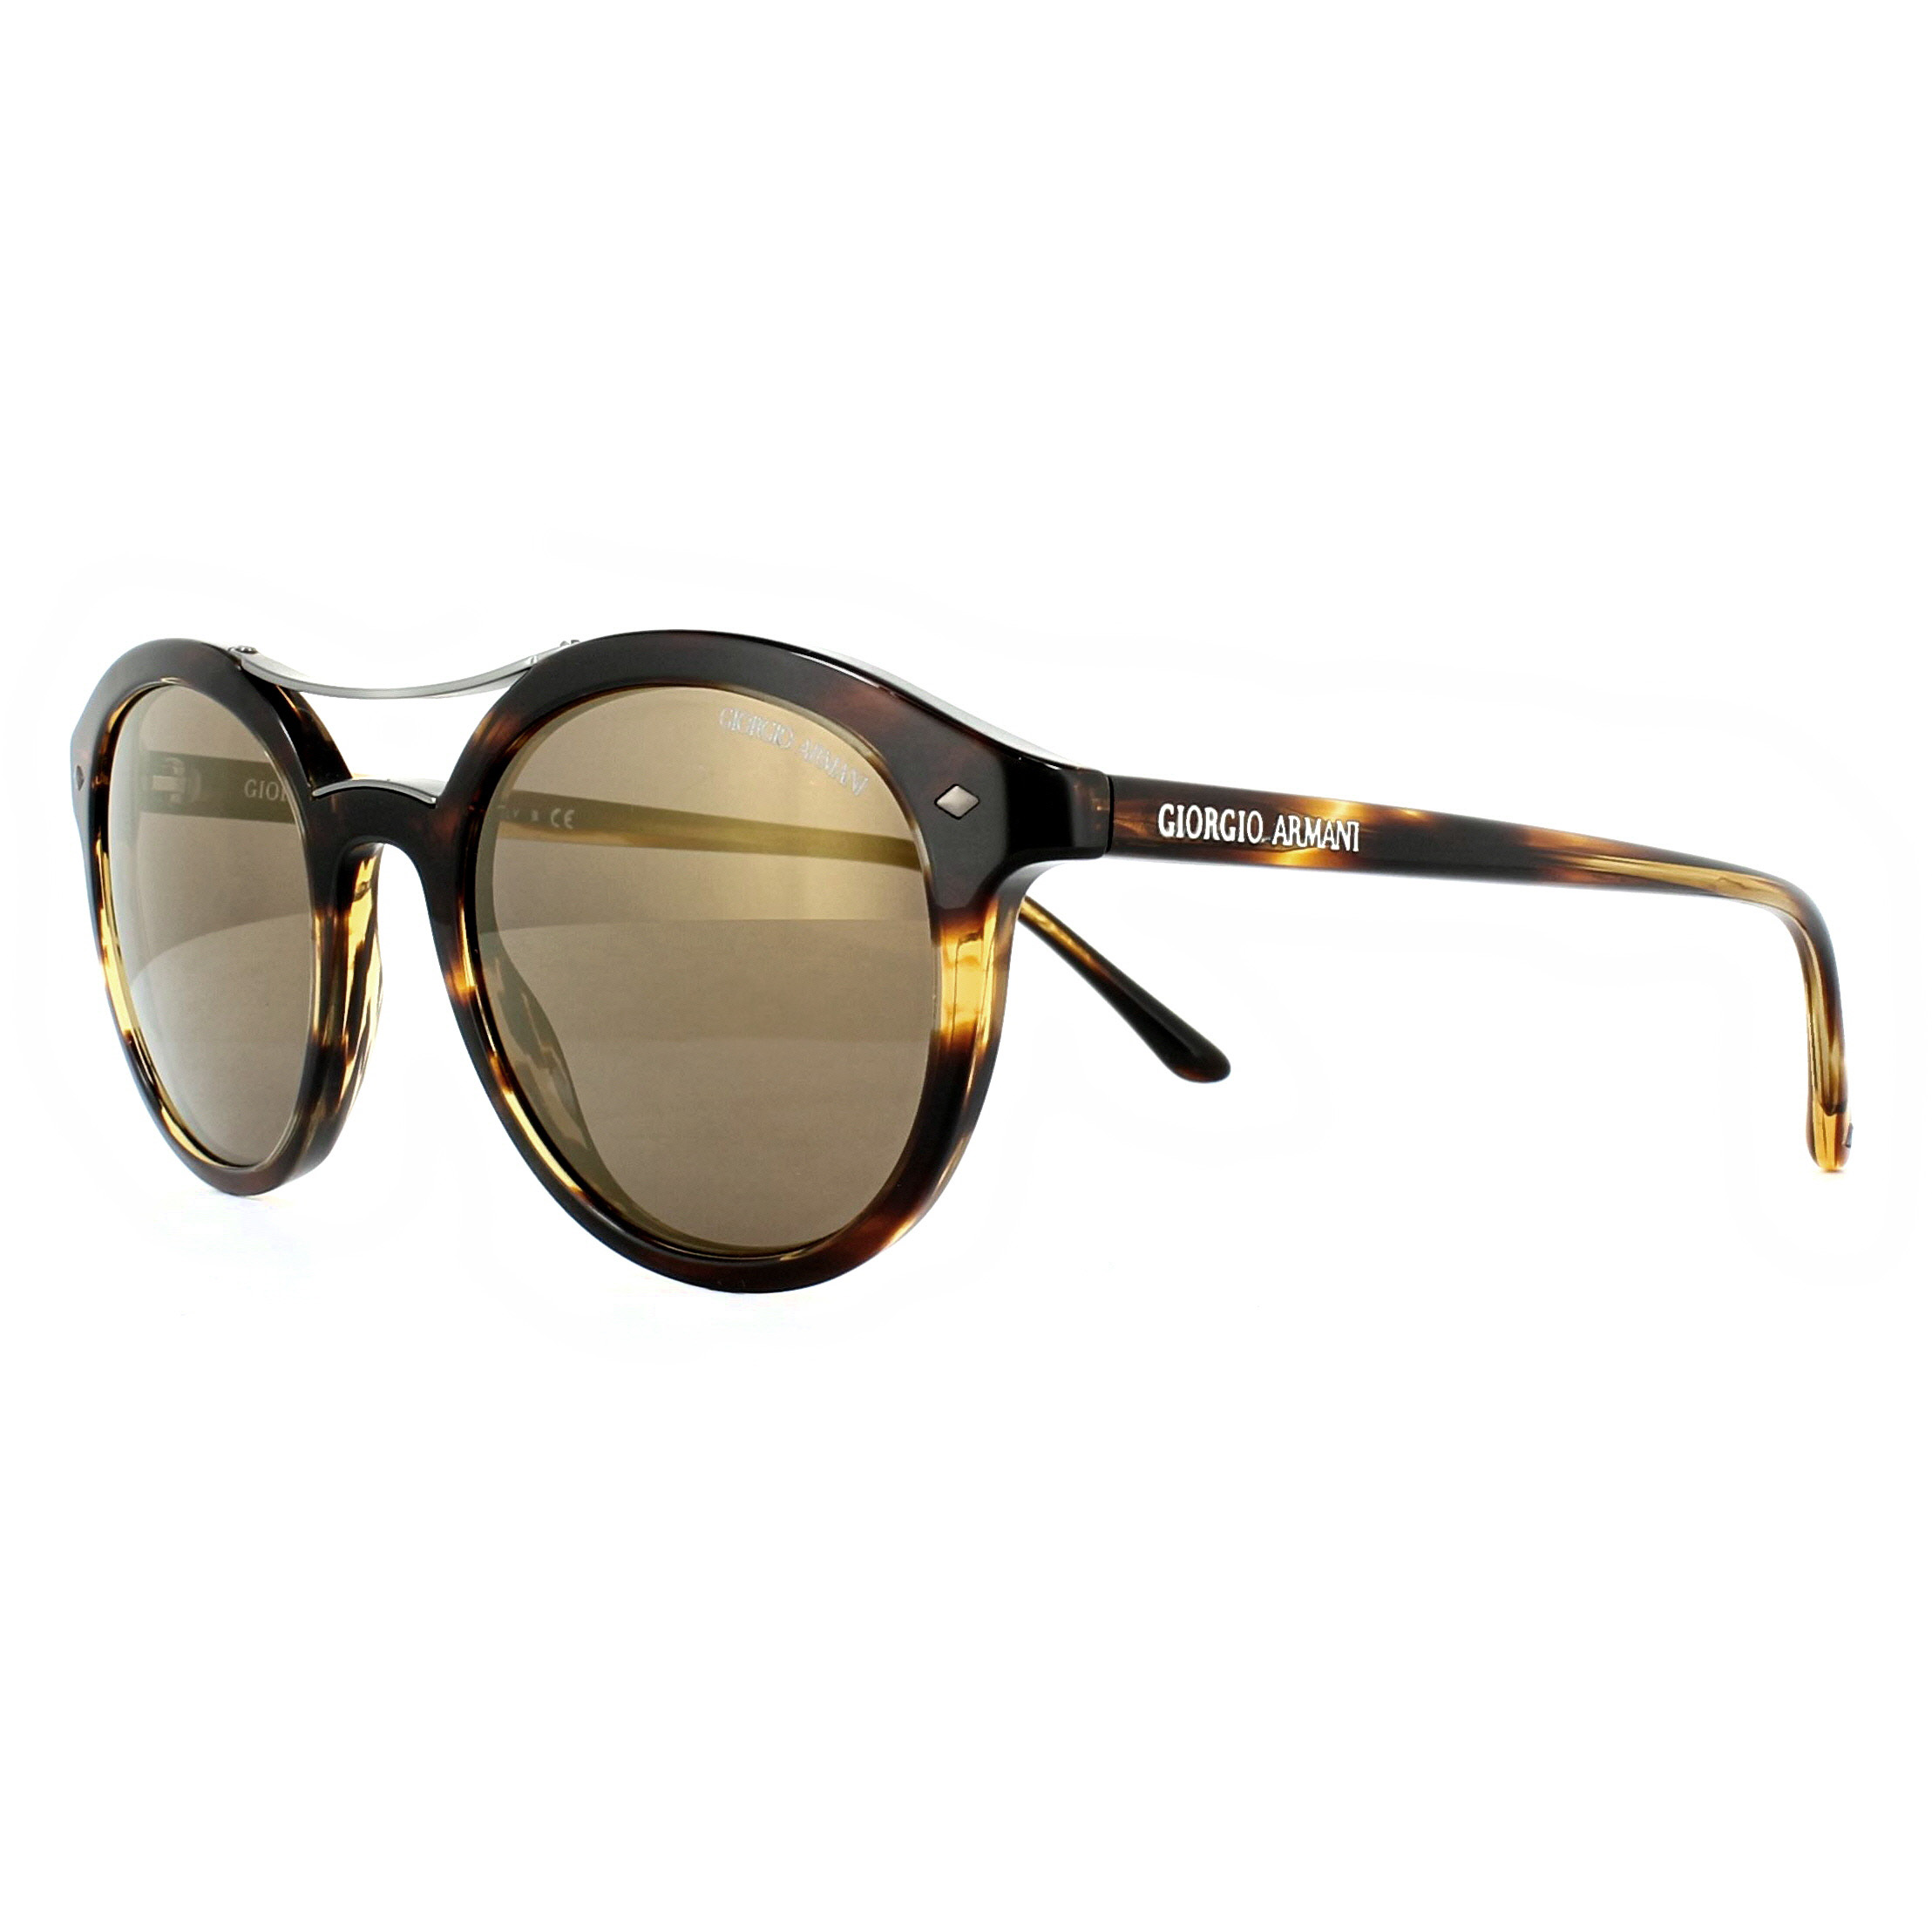 679682d6 Details about Giorgio Armani Sunglasses AR8007 559003 Brown Burned Light  Brown Gold Mirror